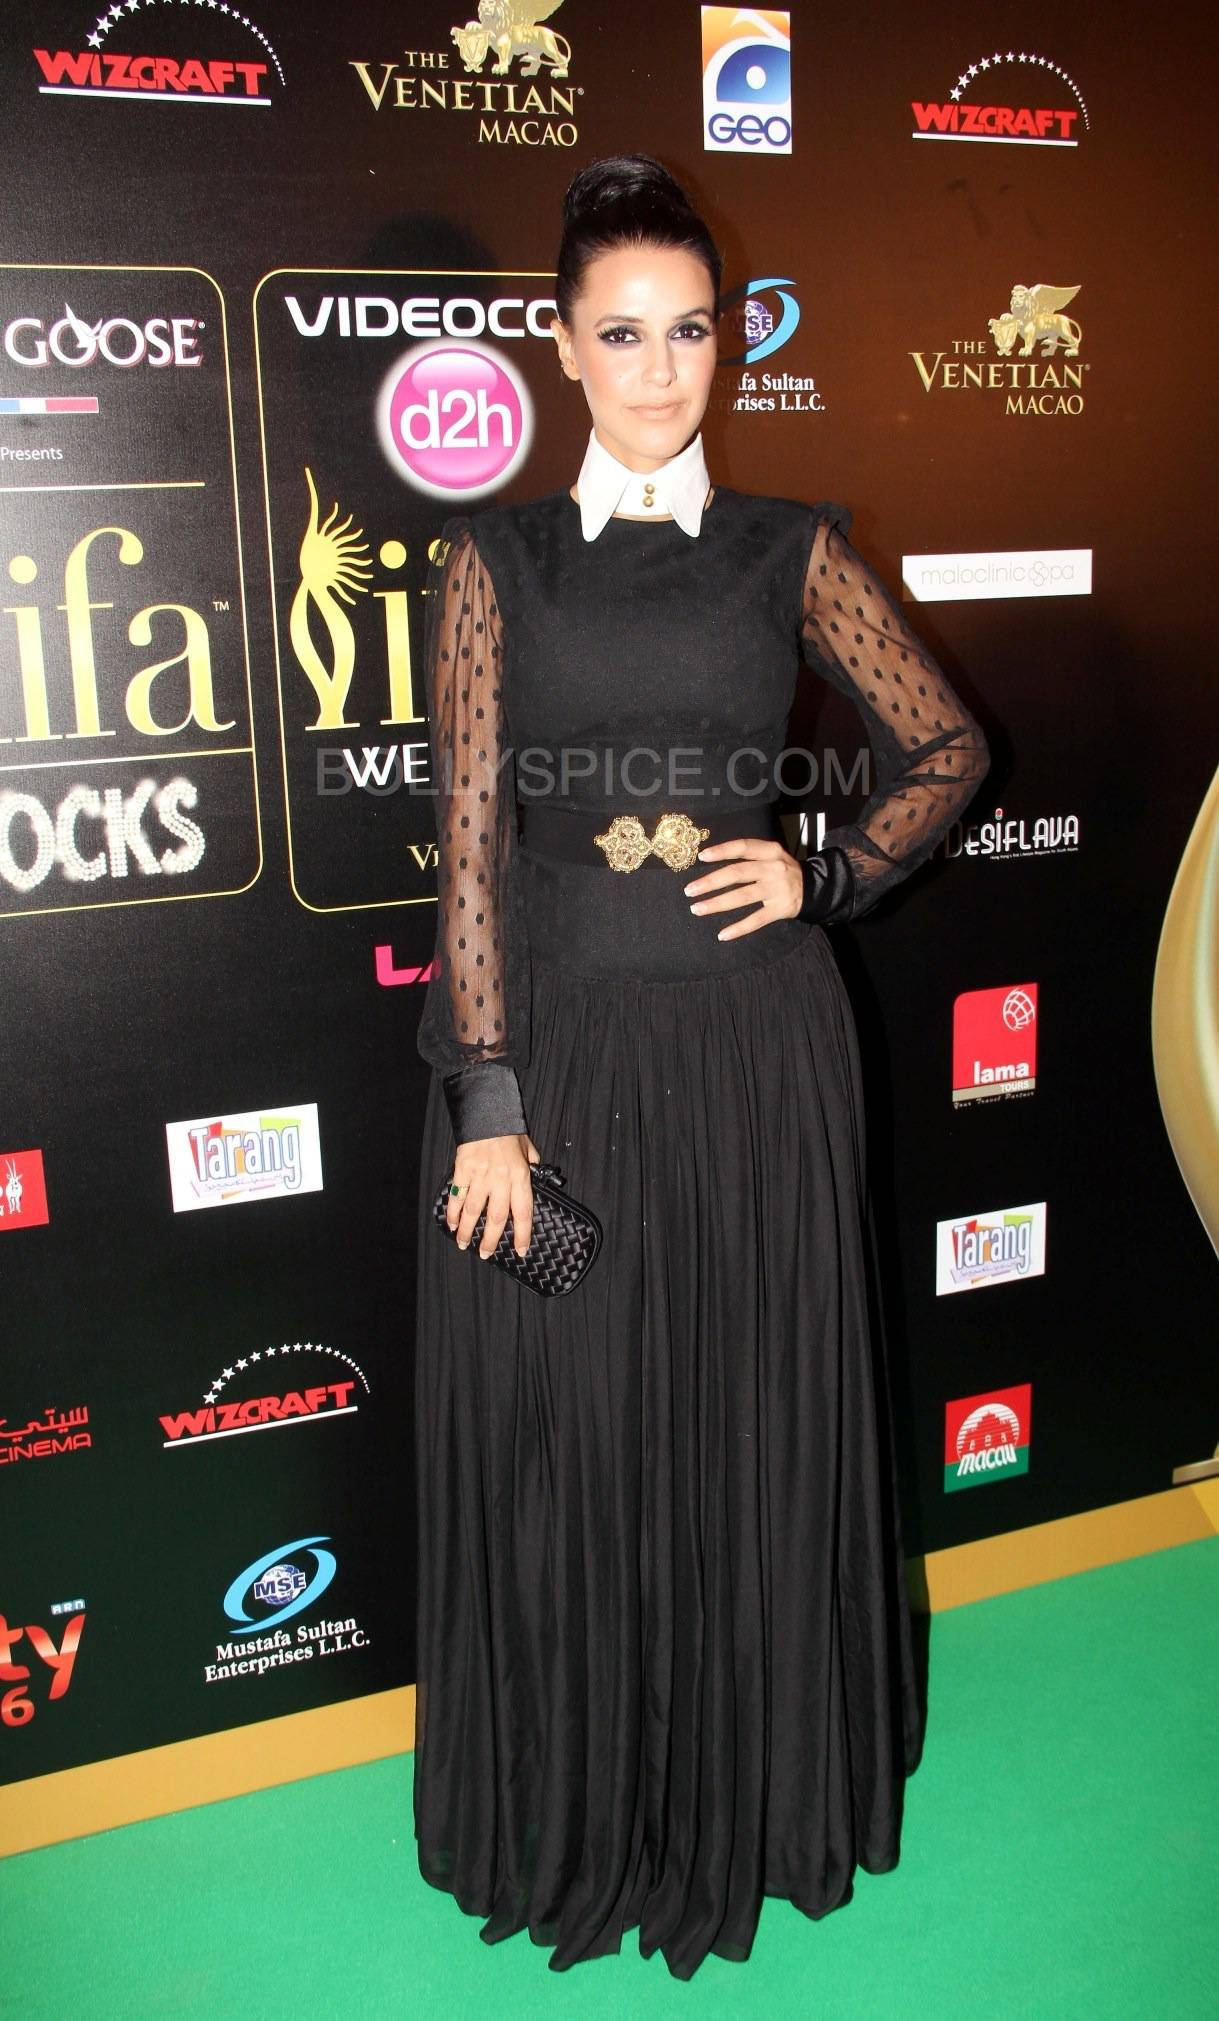 Neha Dhupia at IIFA Rocks Green carpet More from IIFA Rocks including winners and more Green Carpet pics! Pics added!